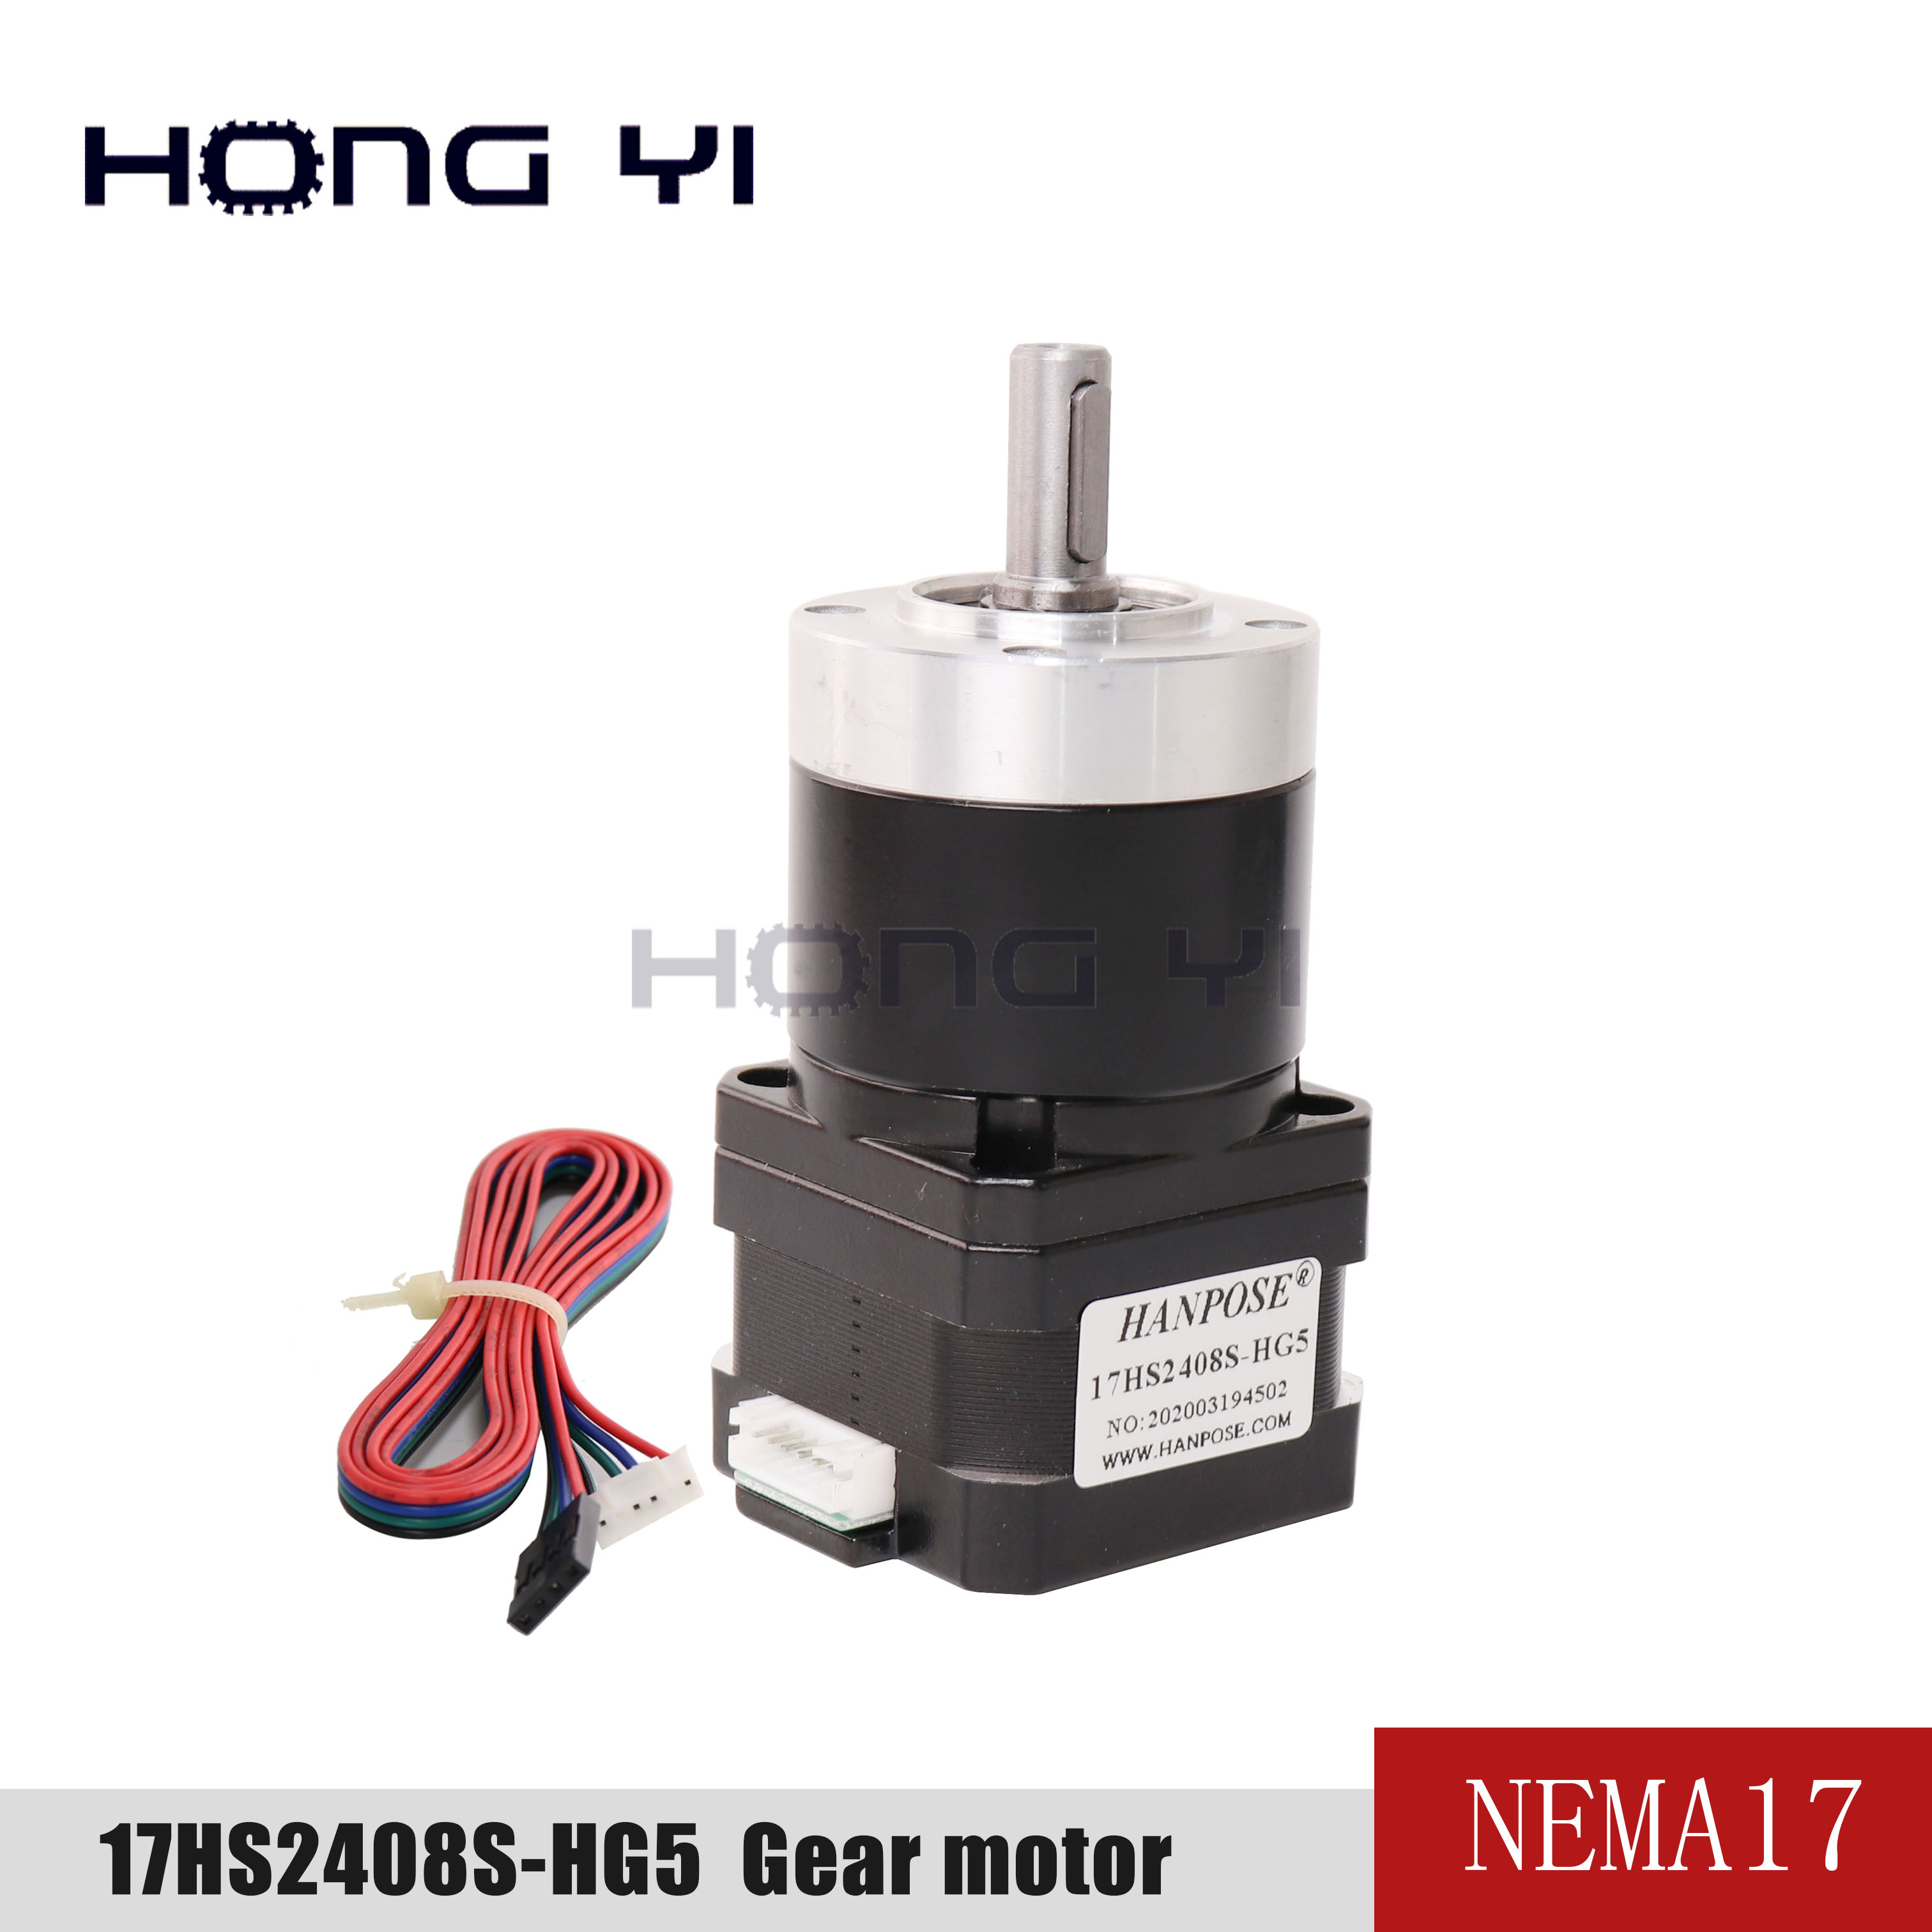 17hs2408-HG high precision decelerating motor transmission ratio 5:1 10:1 planetary decelerating stepping motor <font><b>nema17</b></font> motor 3D image